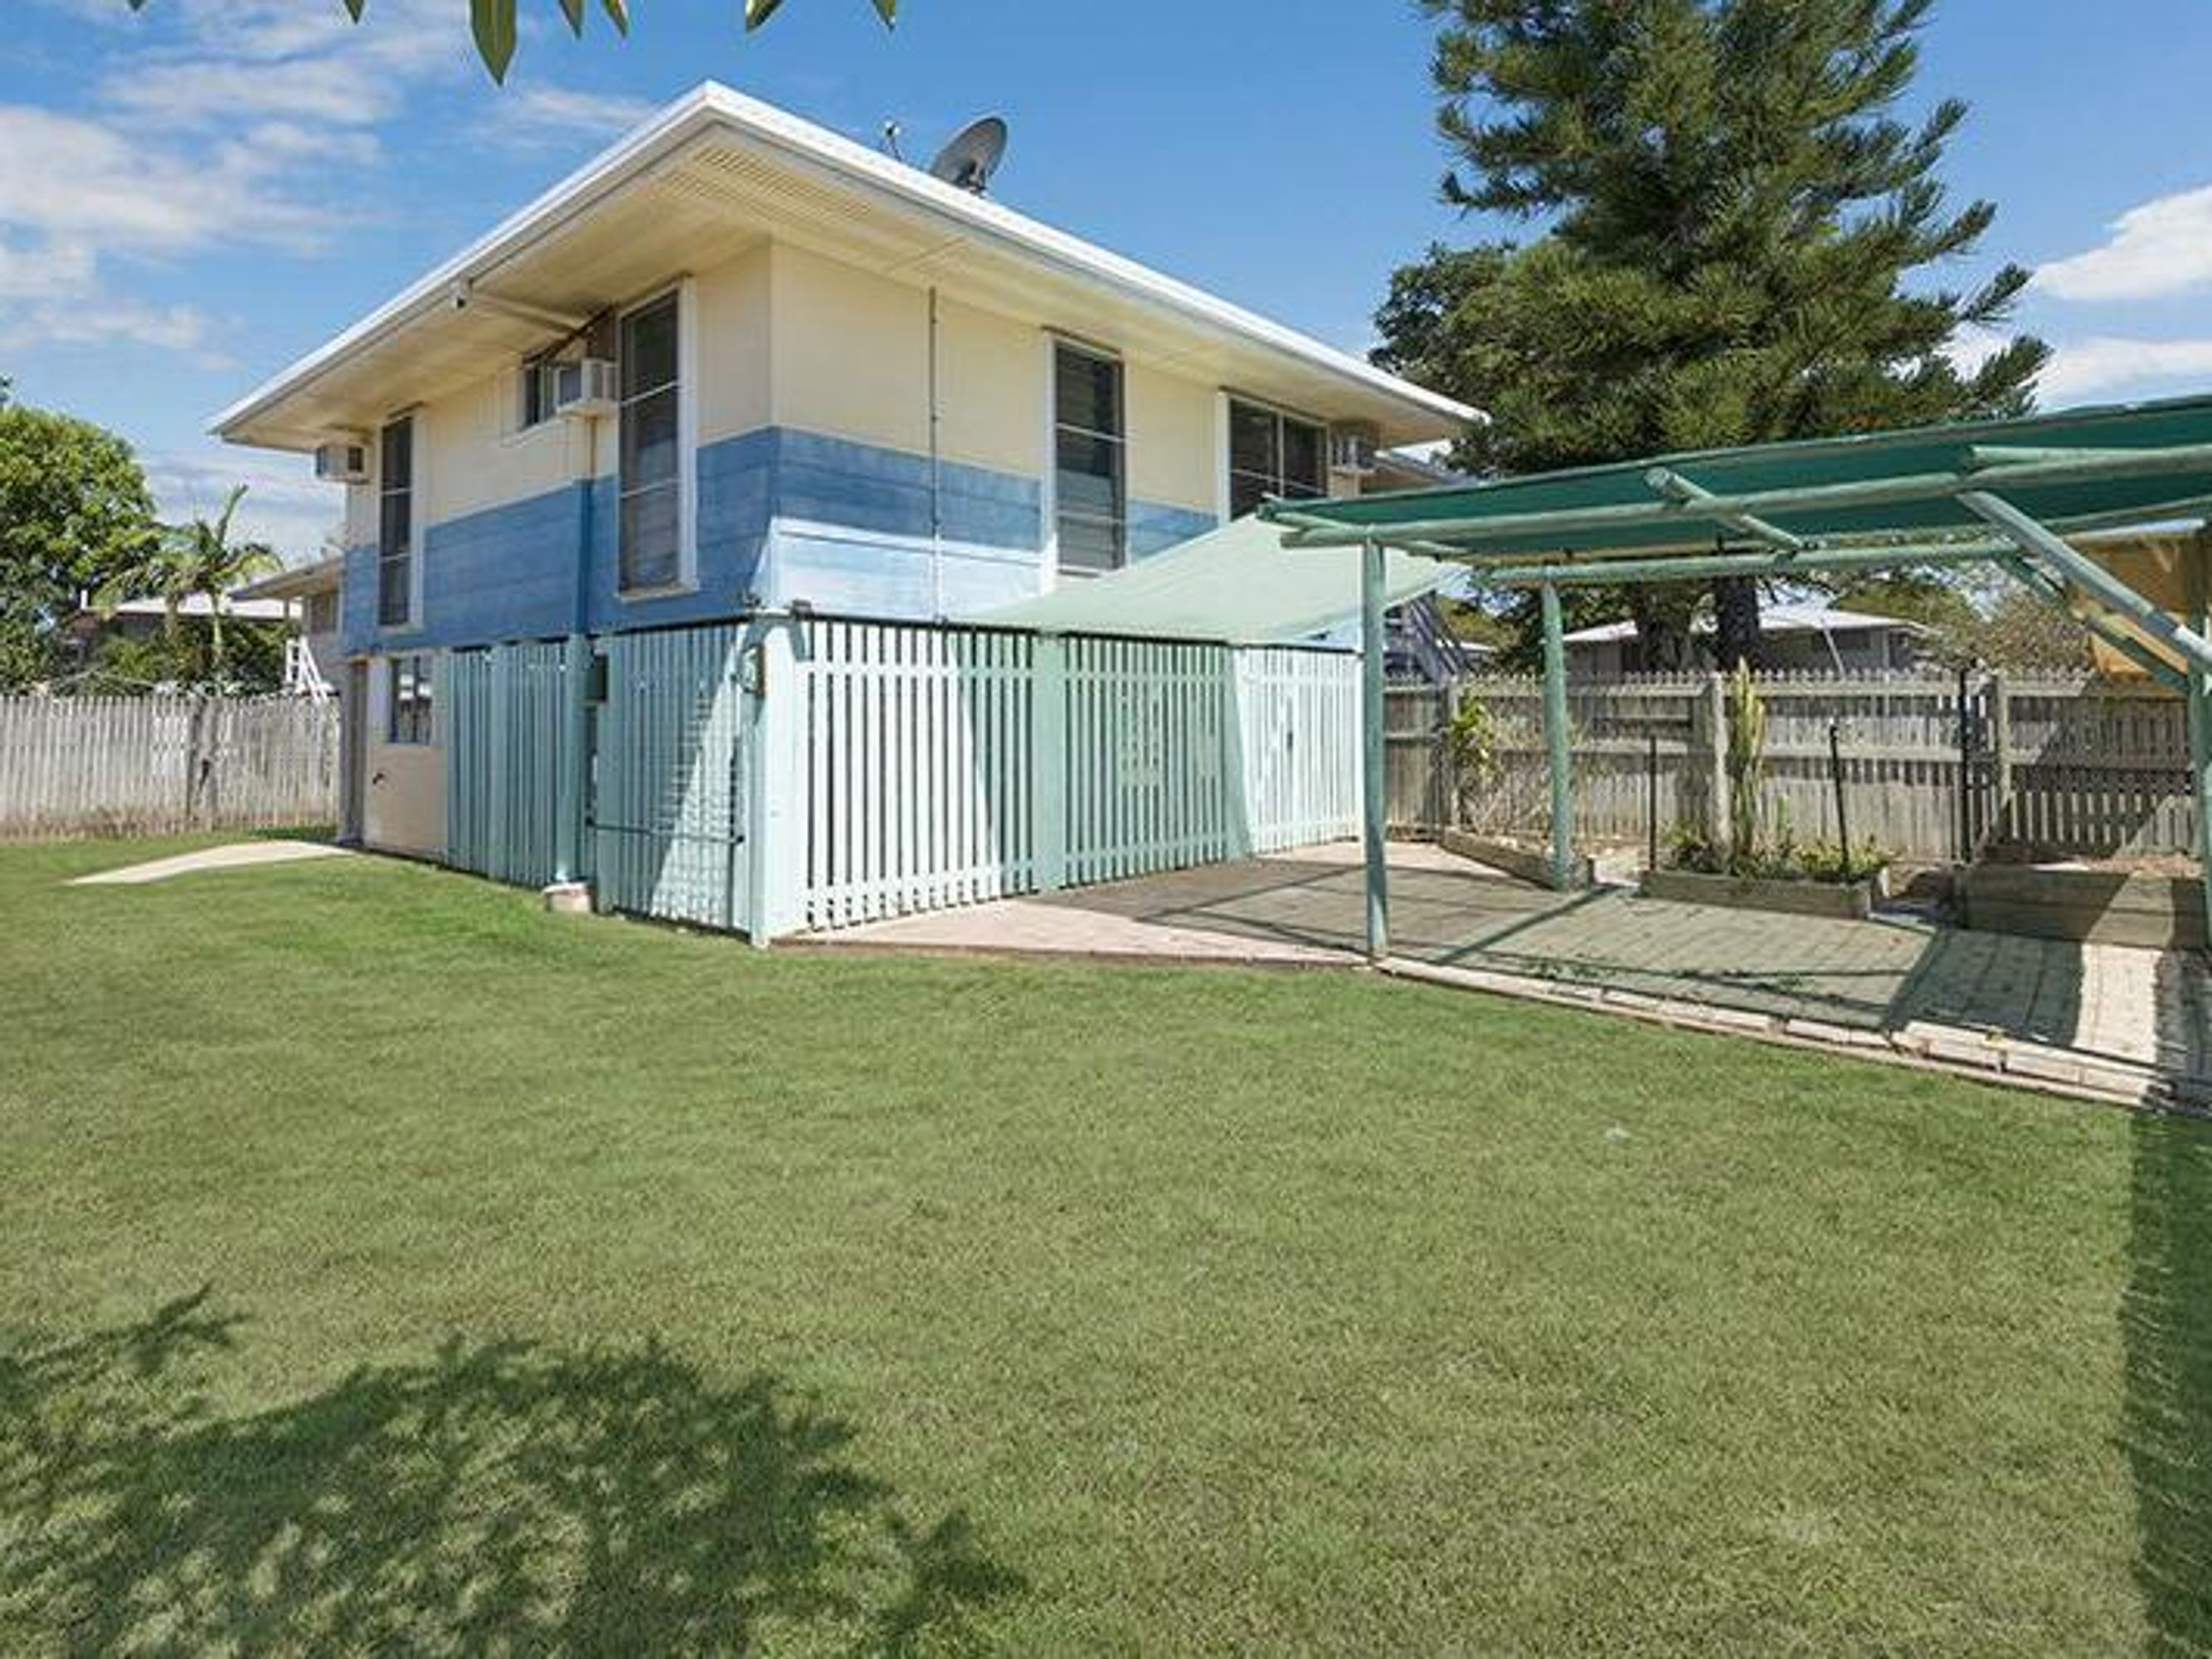 56 Pixley Crescent, Heatley, QLD 4814